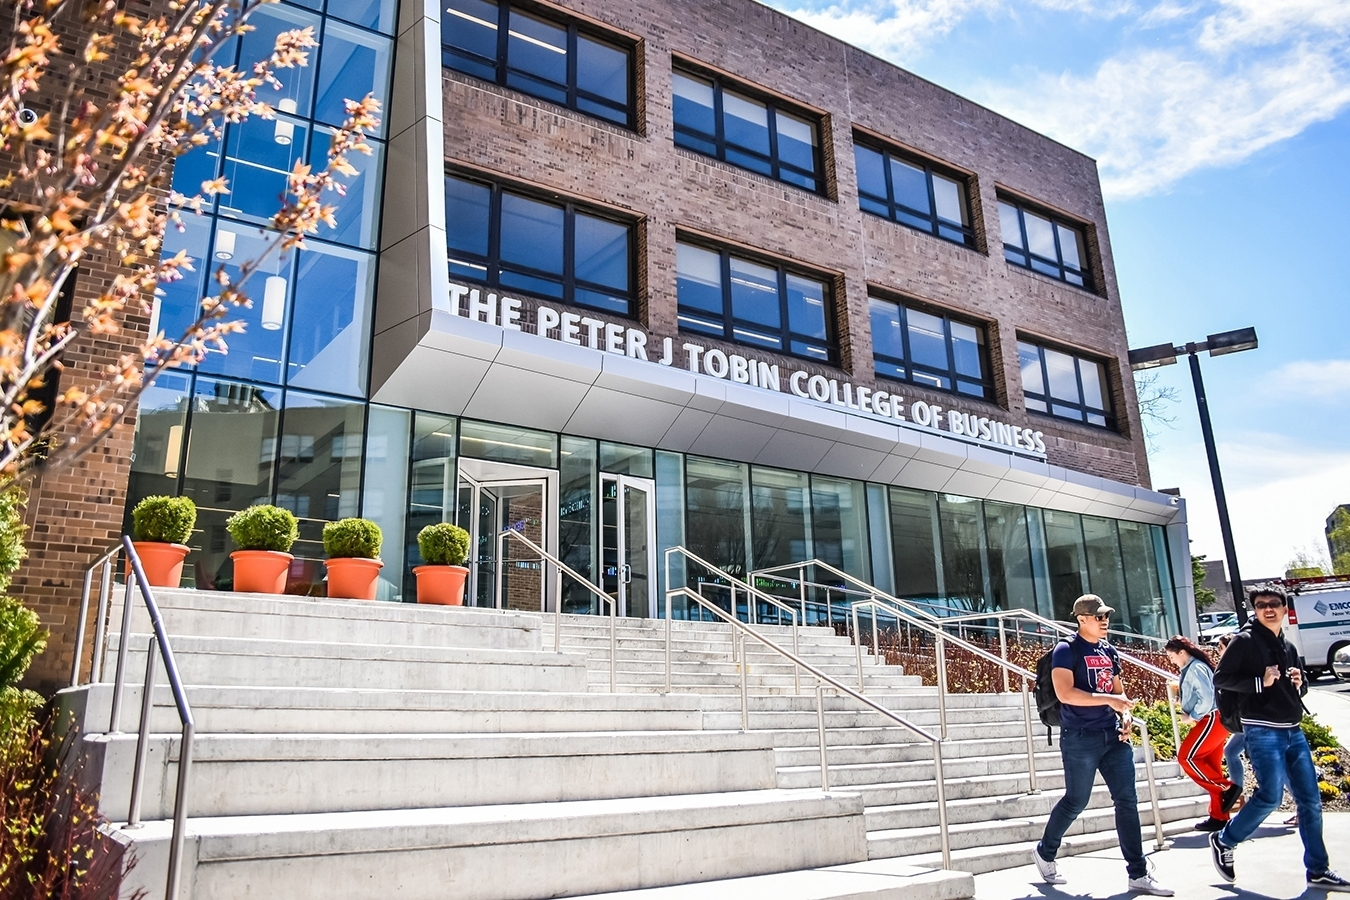 The Peter J. Tobin College of Business entrance